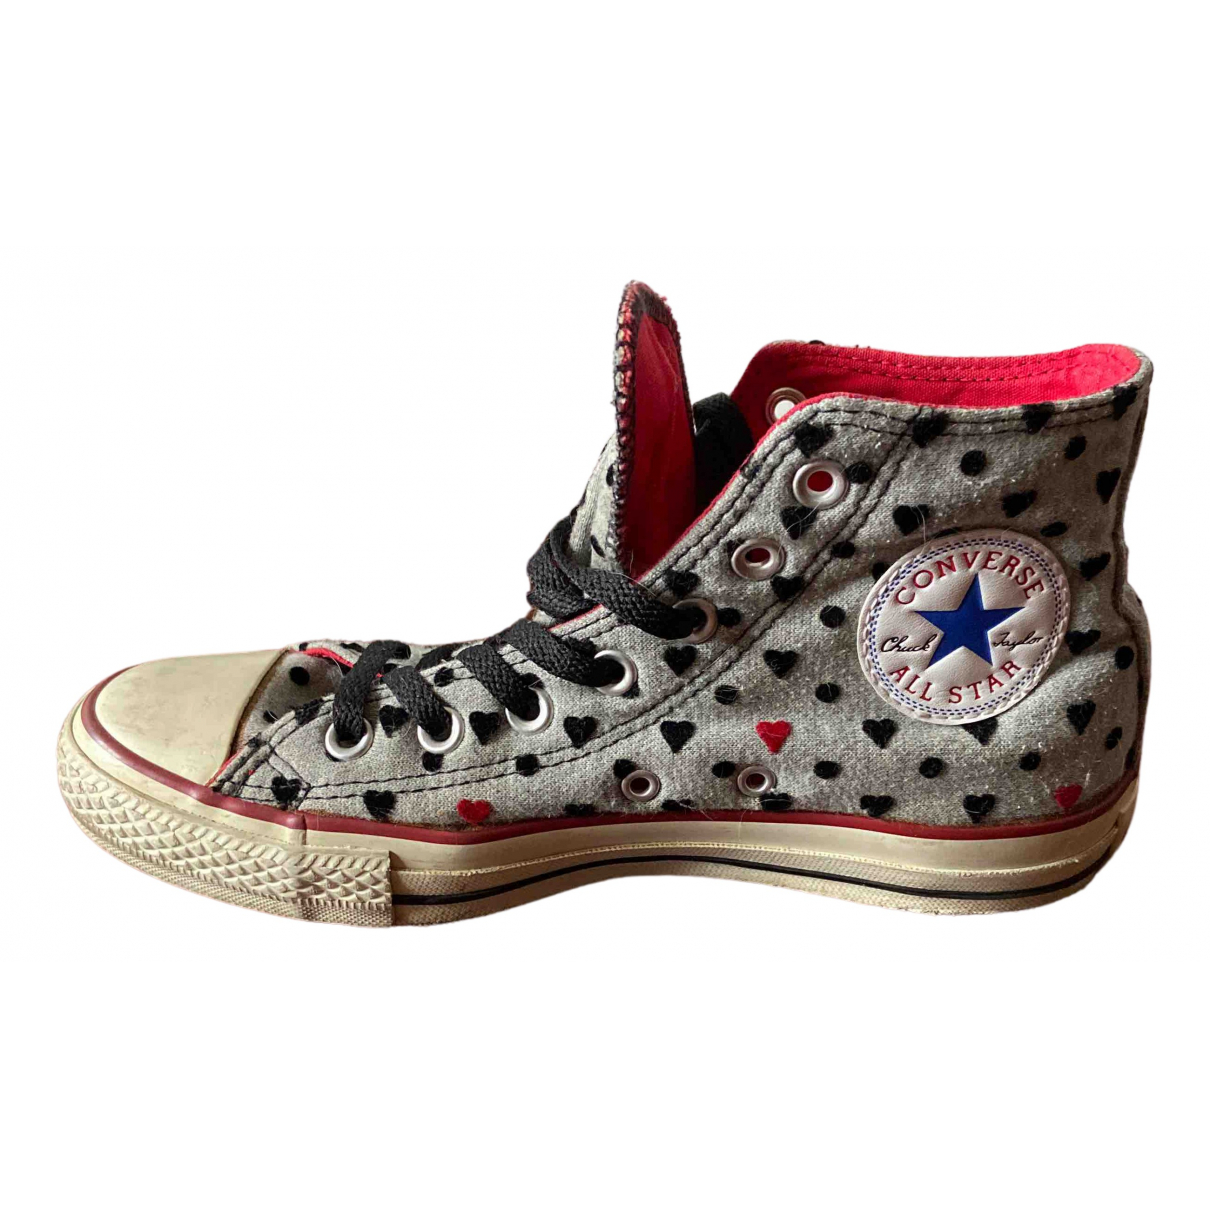 Converse N Grey Cloth Trainers for Women 5.5 UK